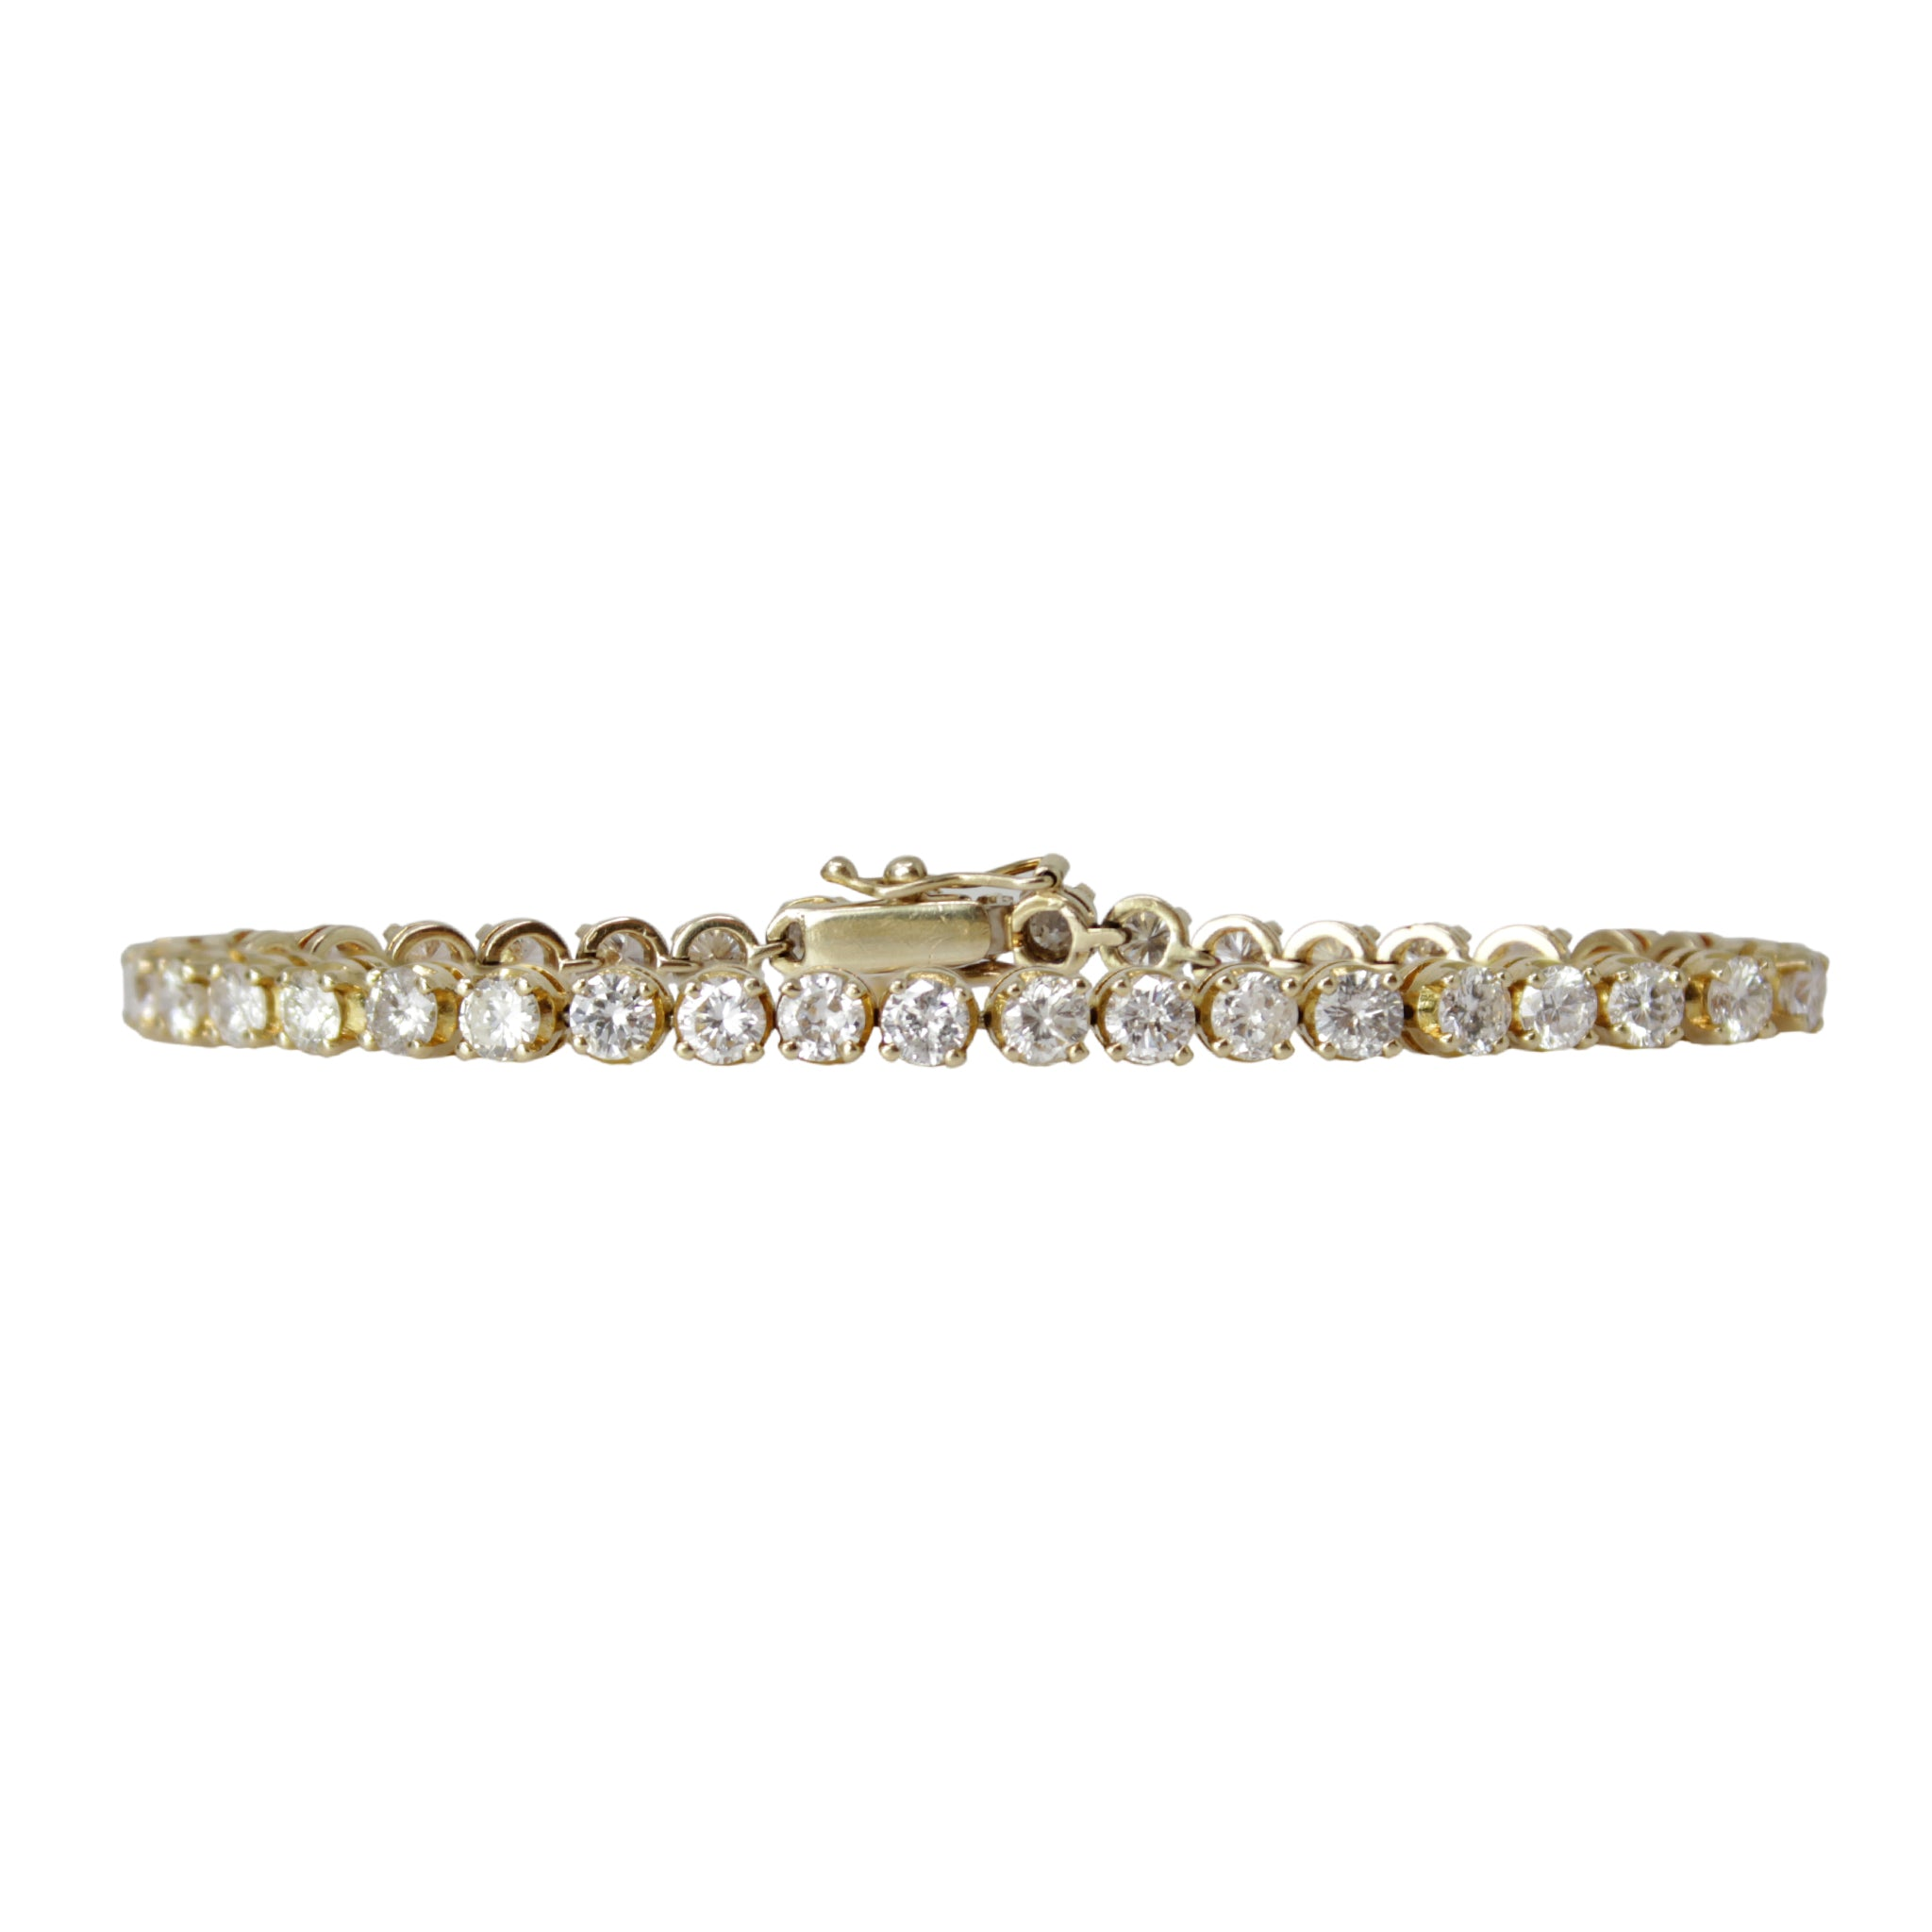 Classic Tennis Bracelet - 14K Yellow Gold Diamond Tennis Bracelet